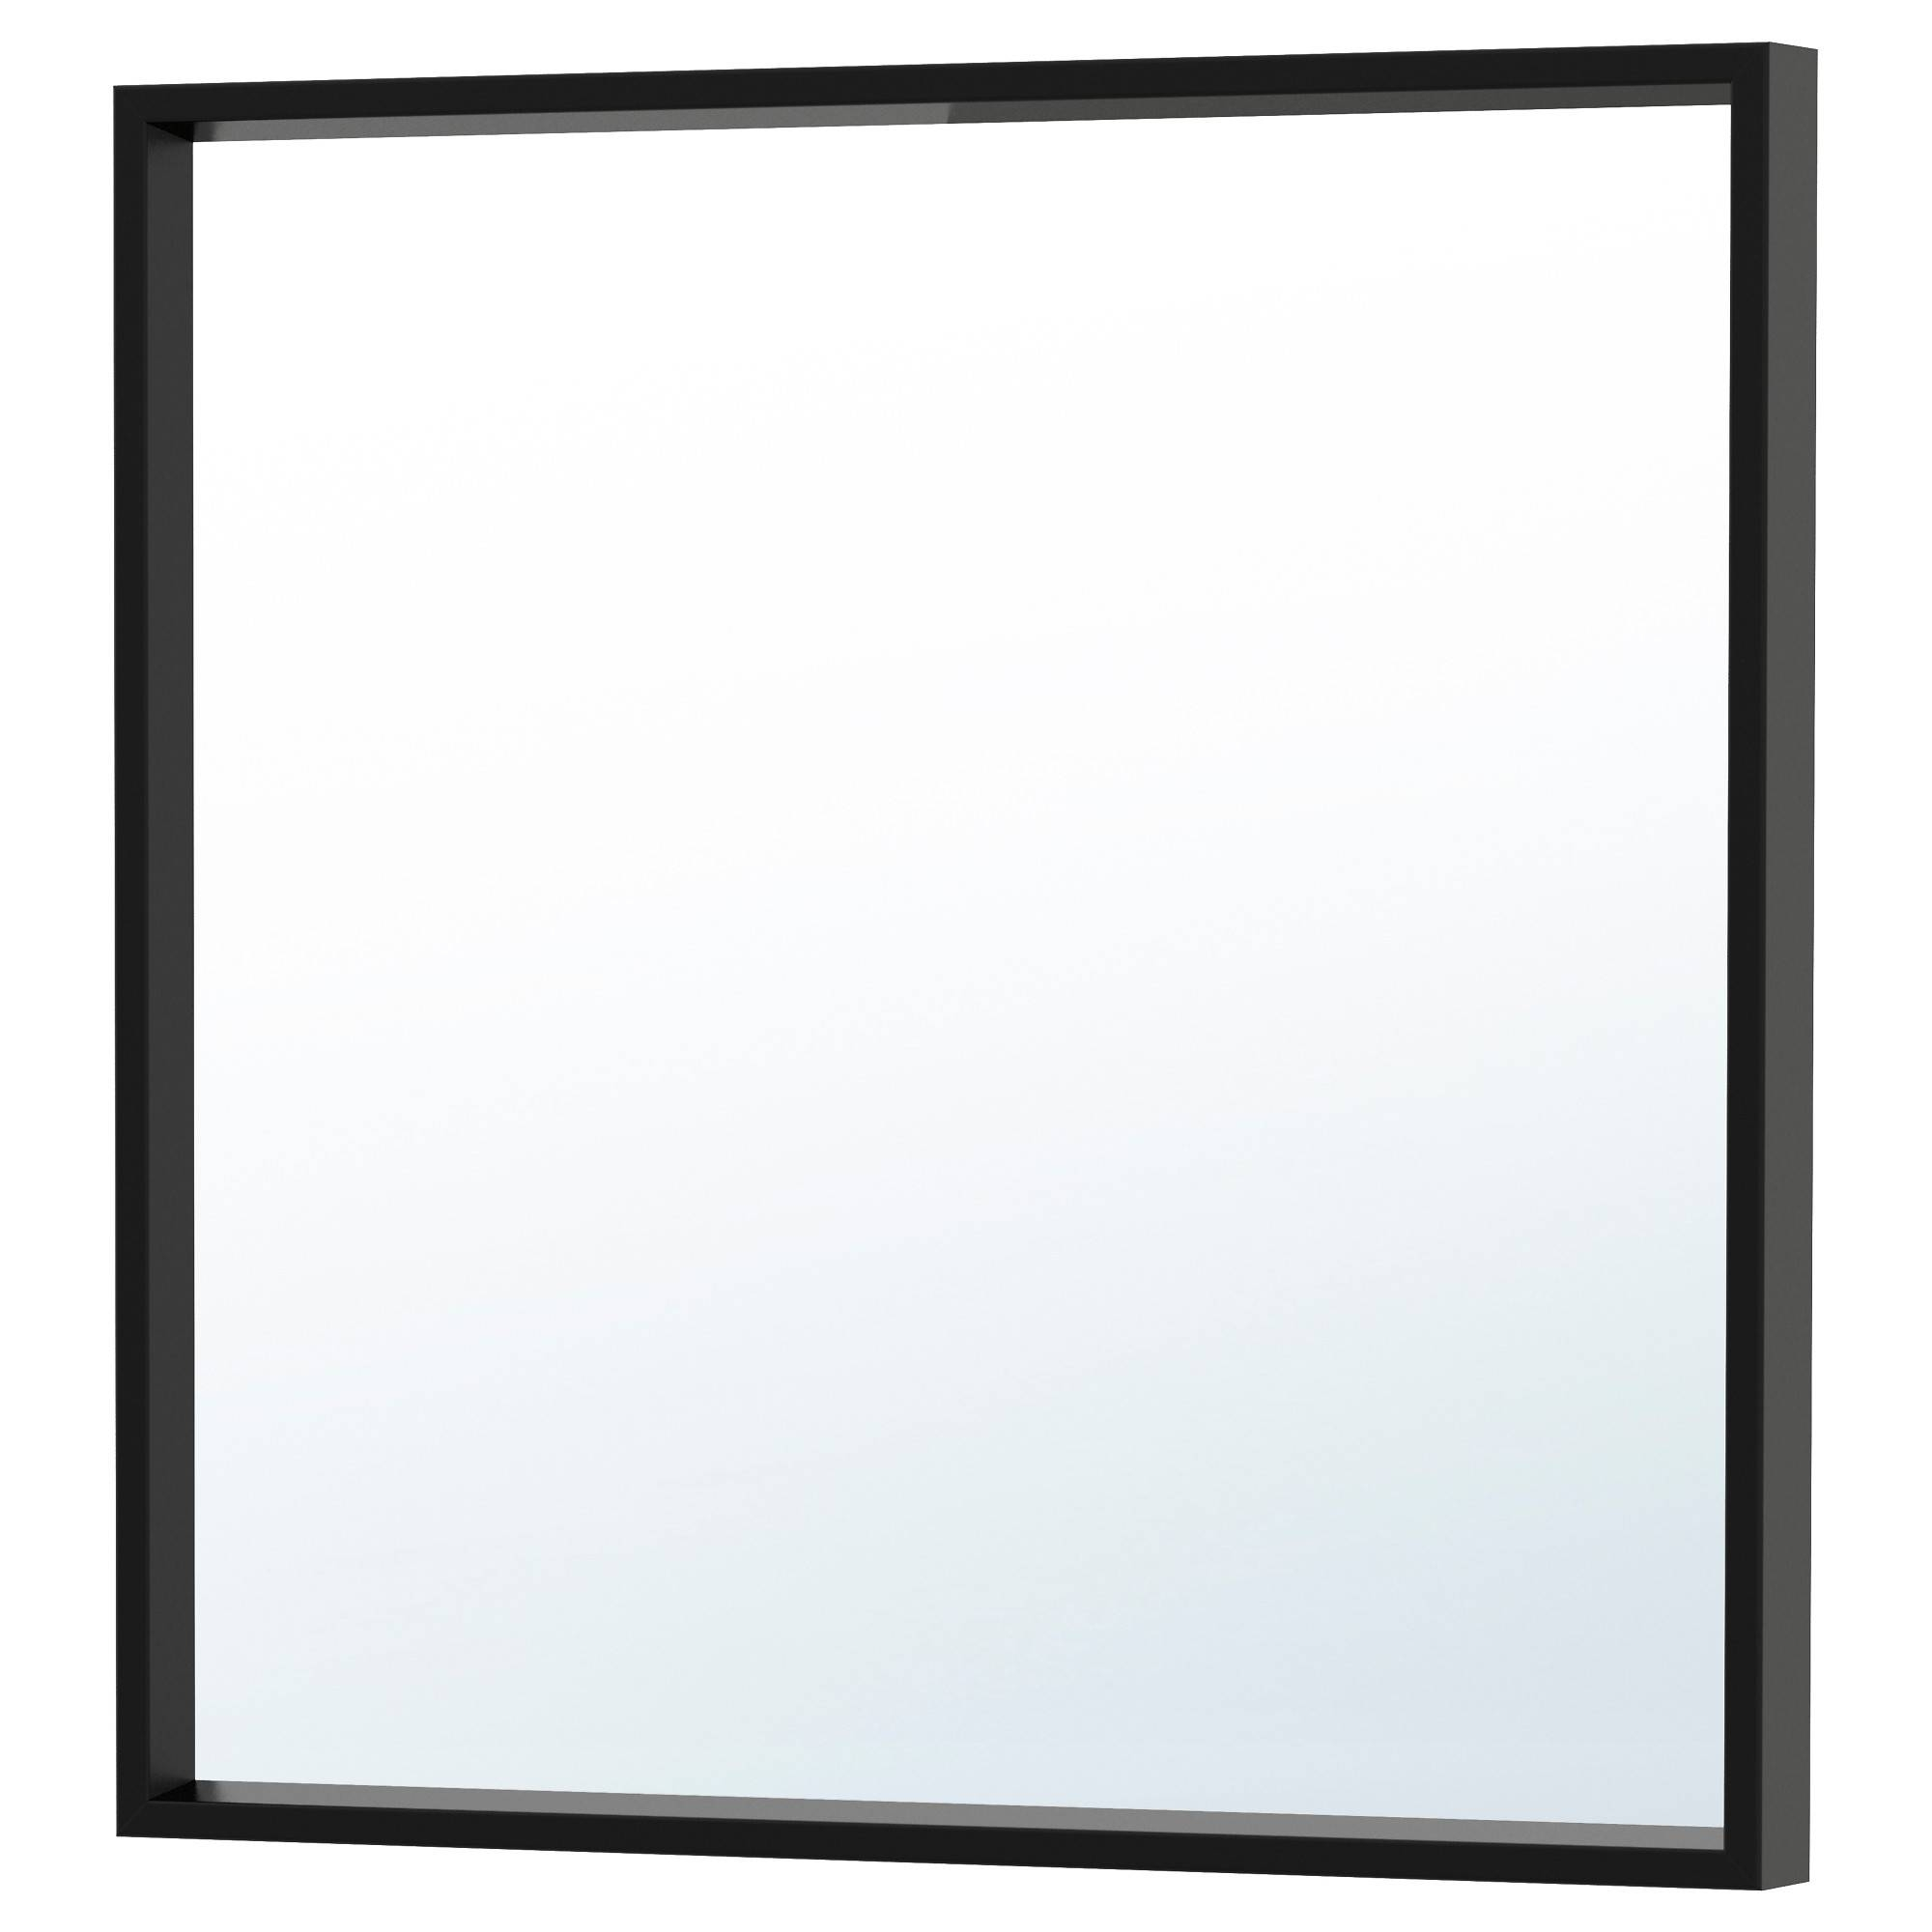 Wall Mirrors – Ikea For Large Square Mirrors (View 14 of 15)